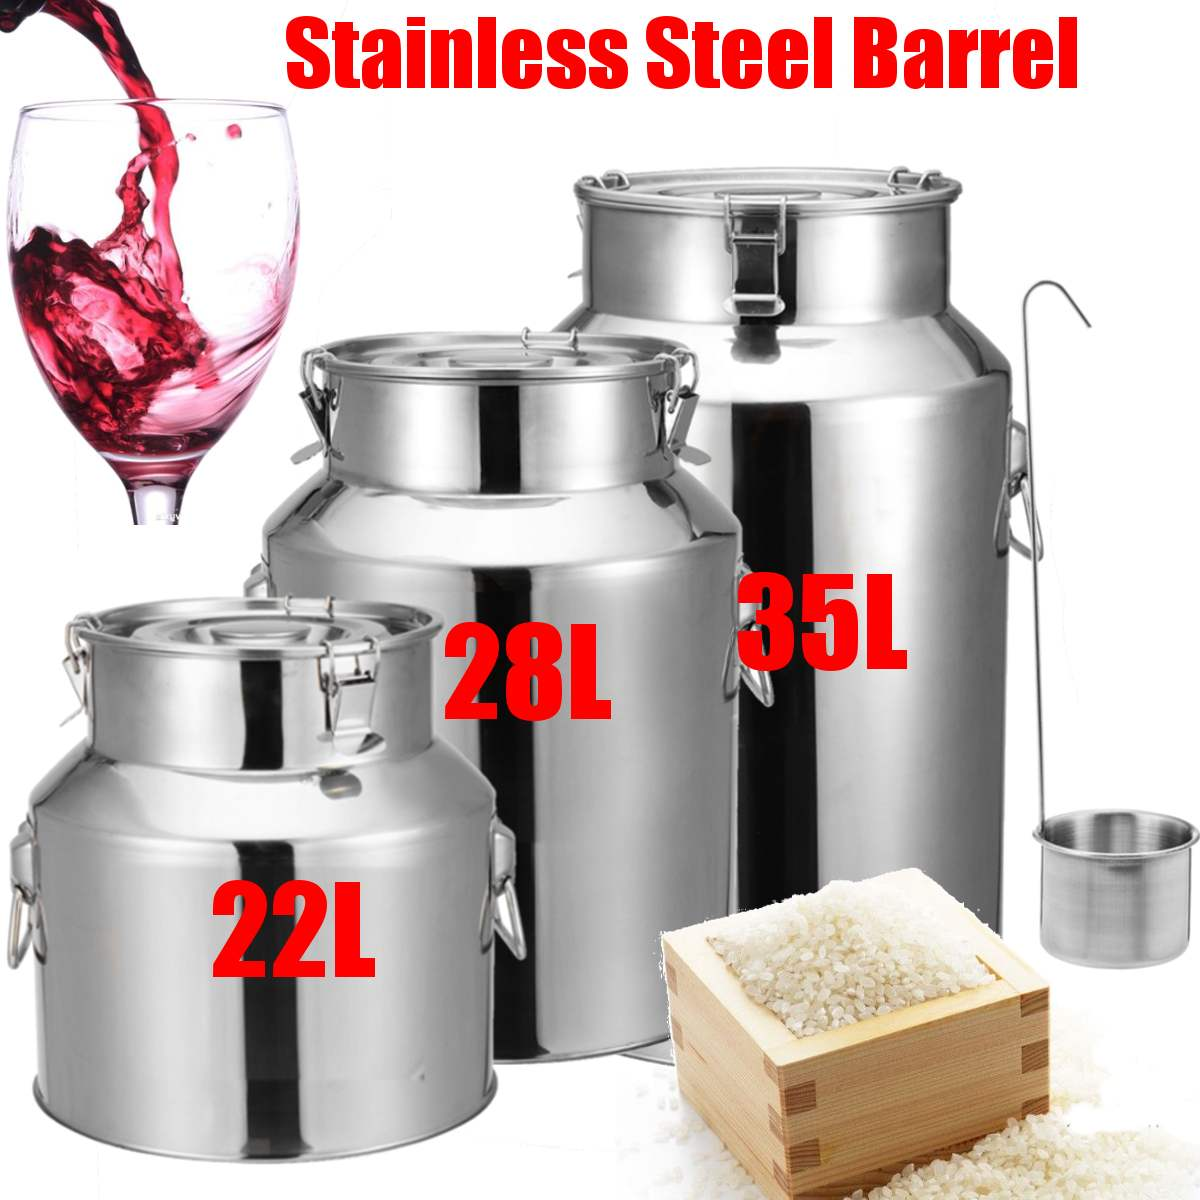 Wine Beer Brewing Alcohol Home DIY Brewing Equipment Stainless Steel Multifunctional Fruit Wine/Whiskey Seal Brewing Barrel